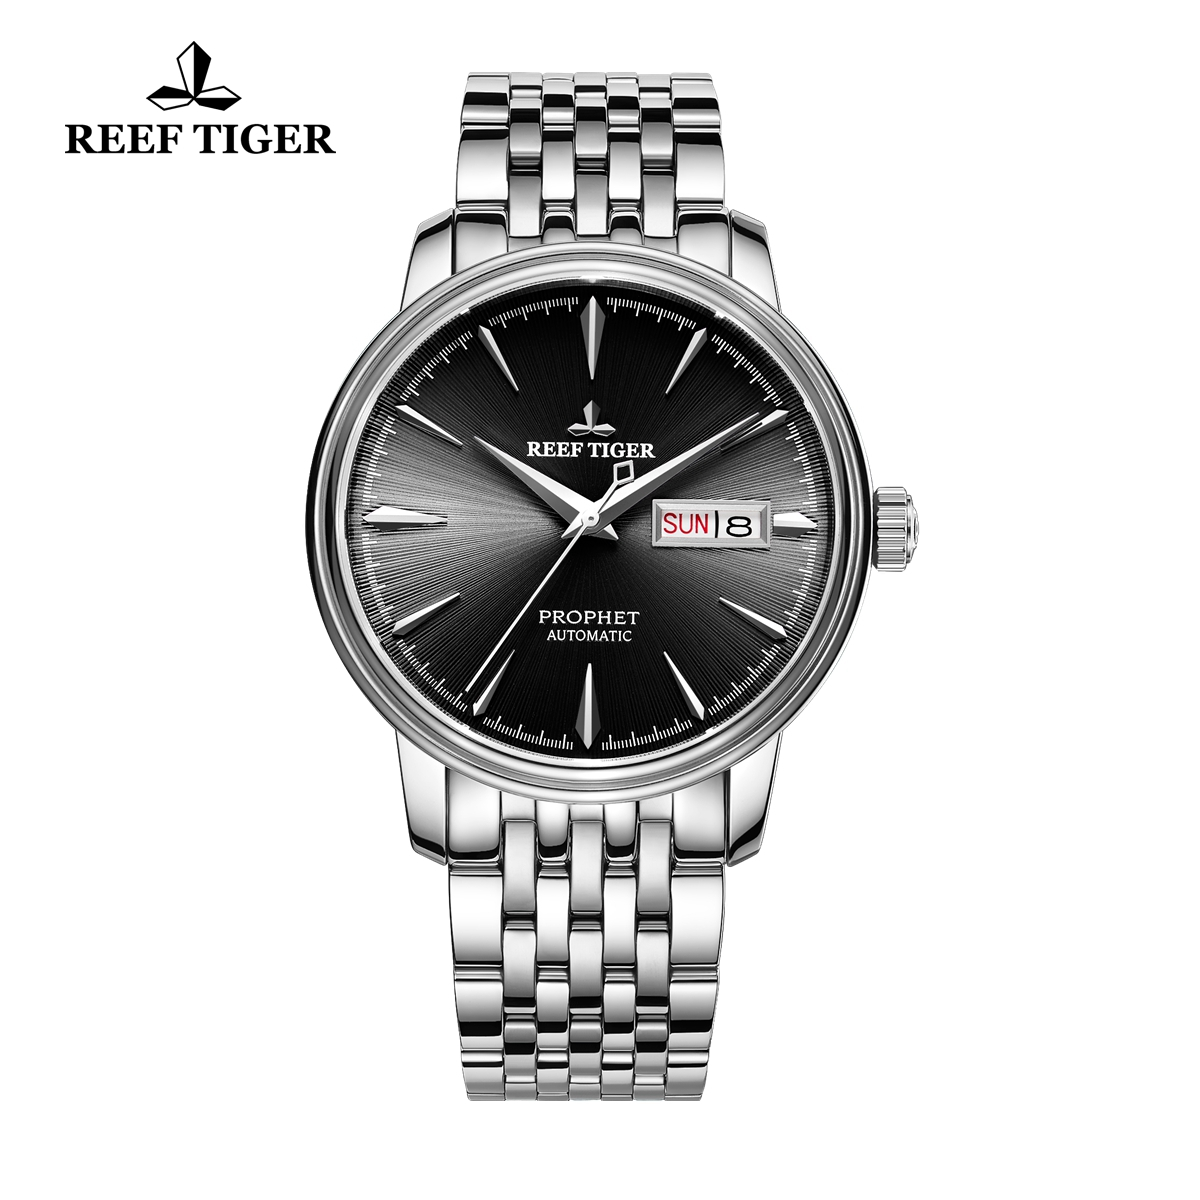 Reef Tiger Prophet Men's Fashion Automatic Business Steel Black Dial Watch RGA8236-YBY